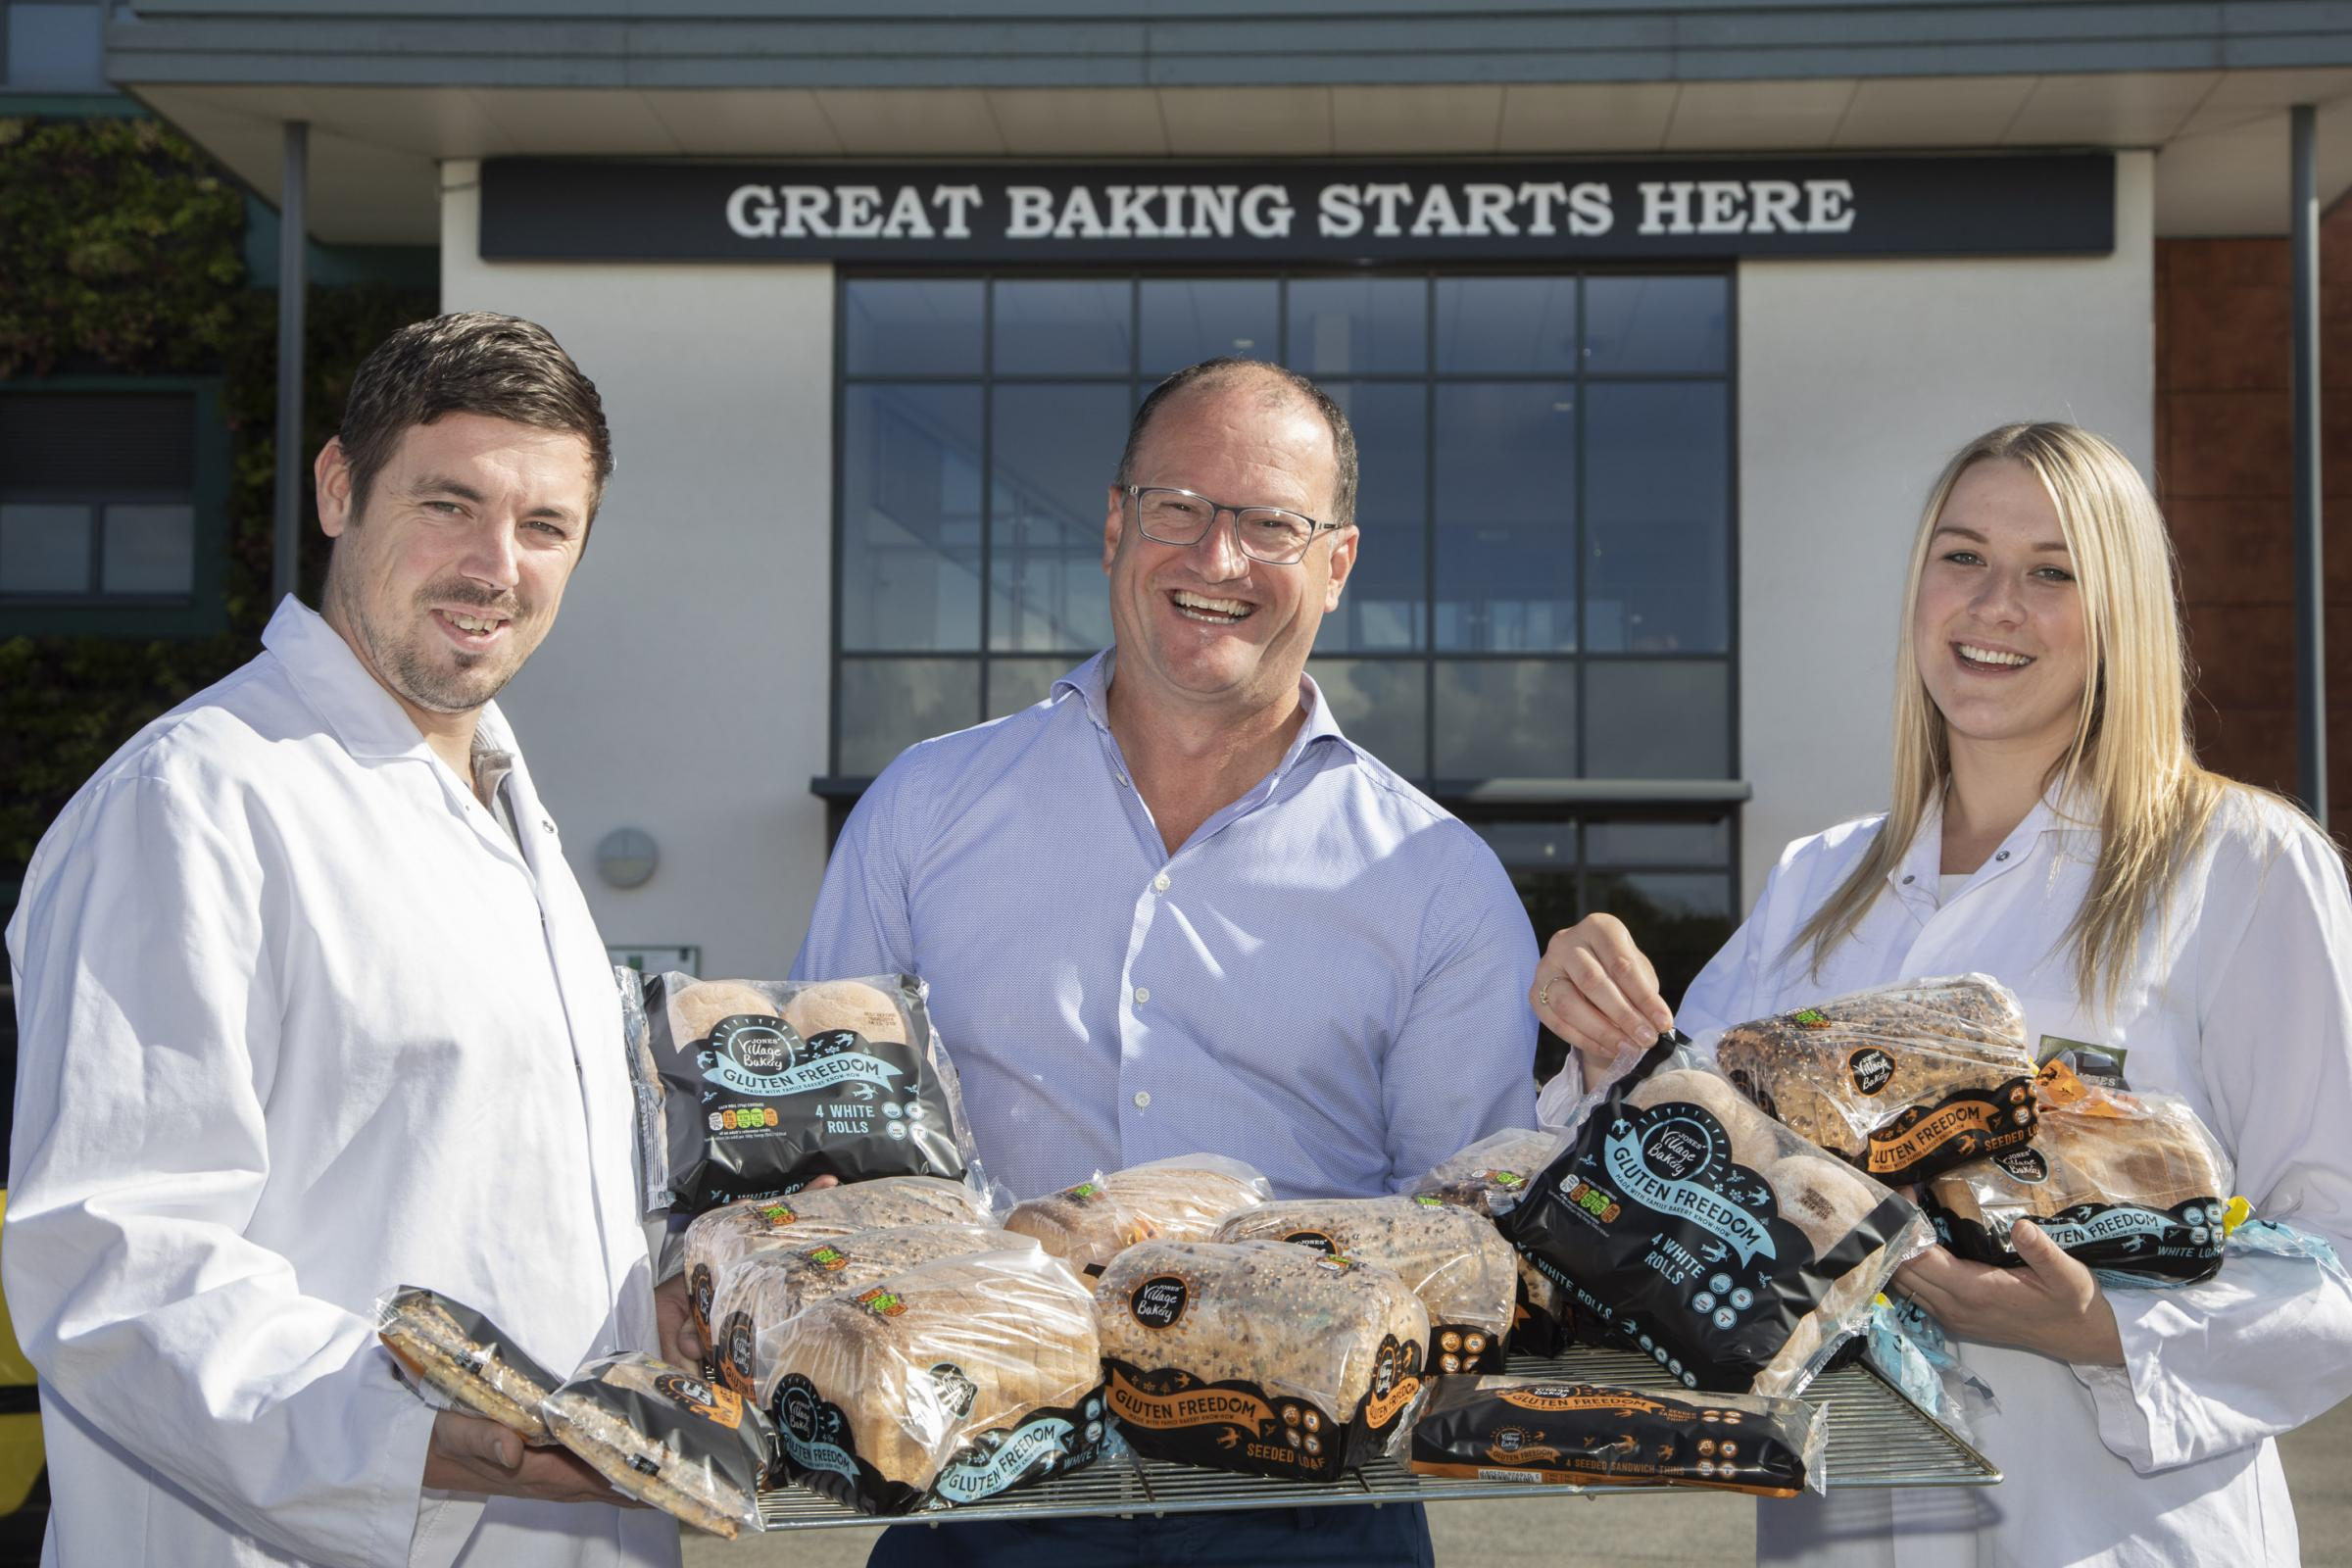 Village Bakery, Wrexham Gluten Freedom range . Pictured is MD Robin Jones (centre) with Craig Higgins and Emma Thomas from Village Bakery.